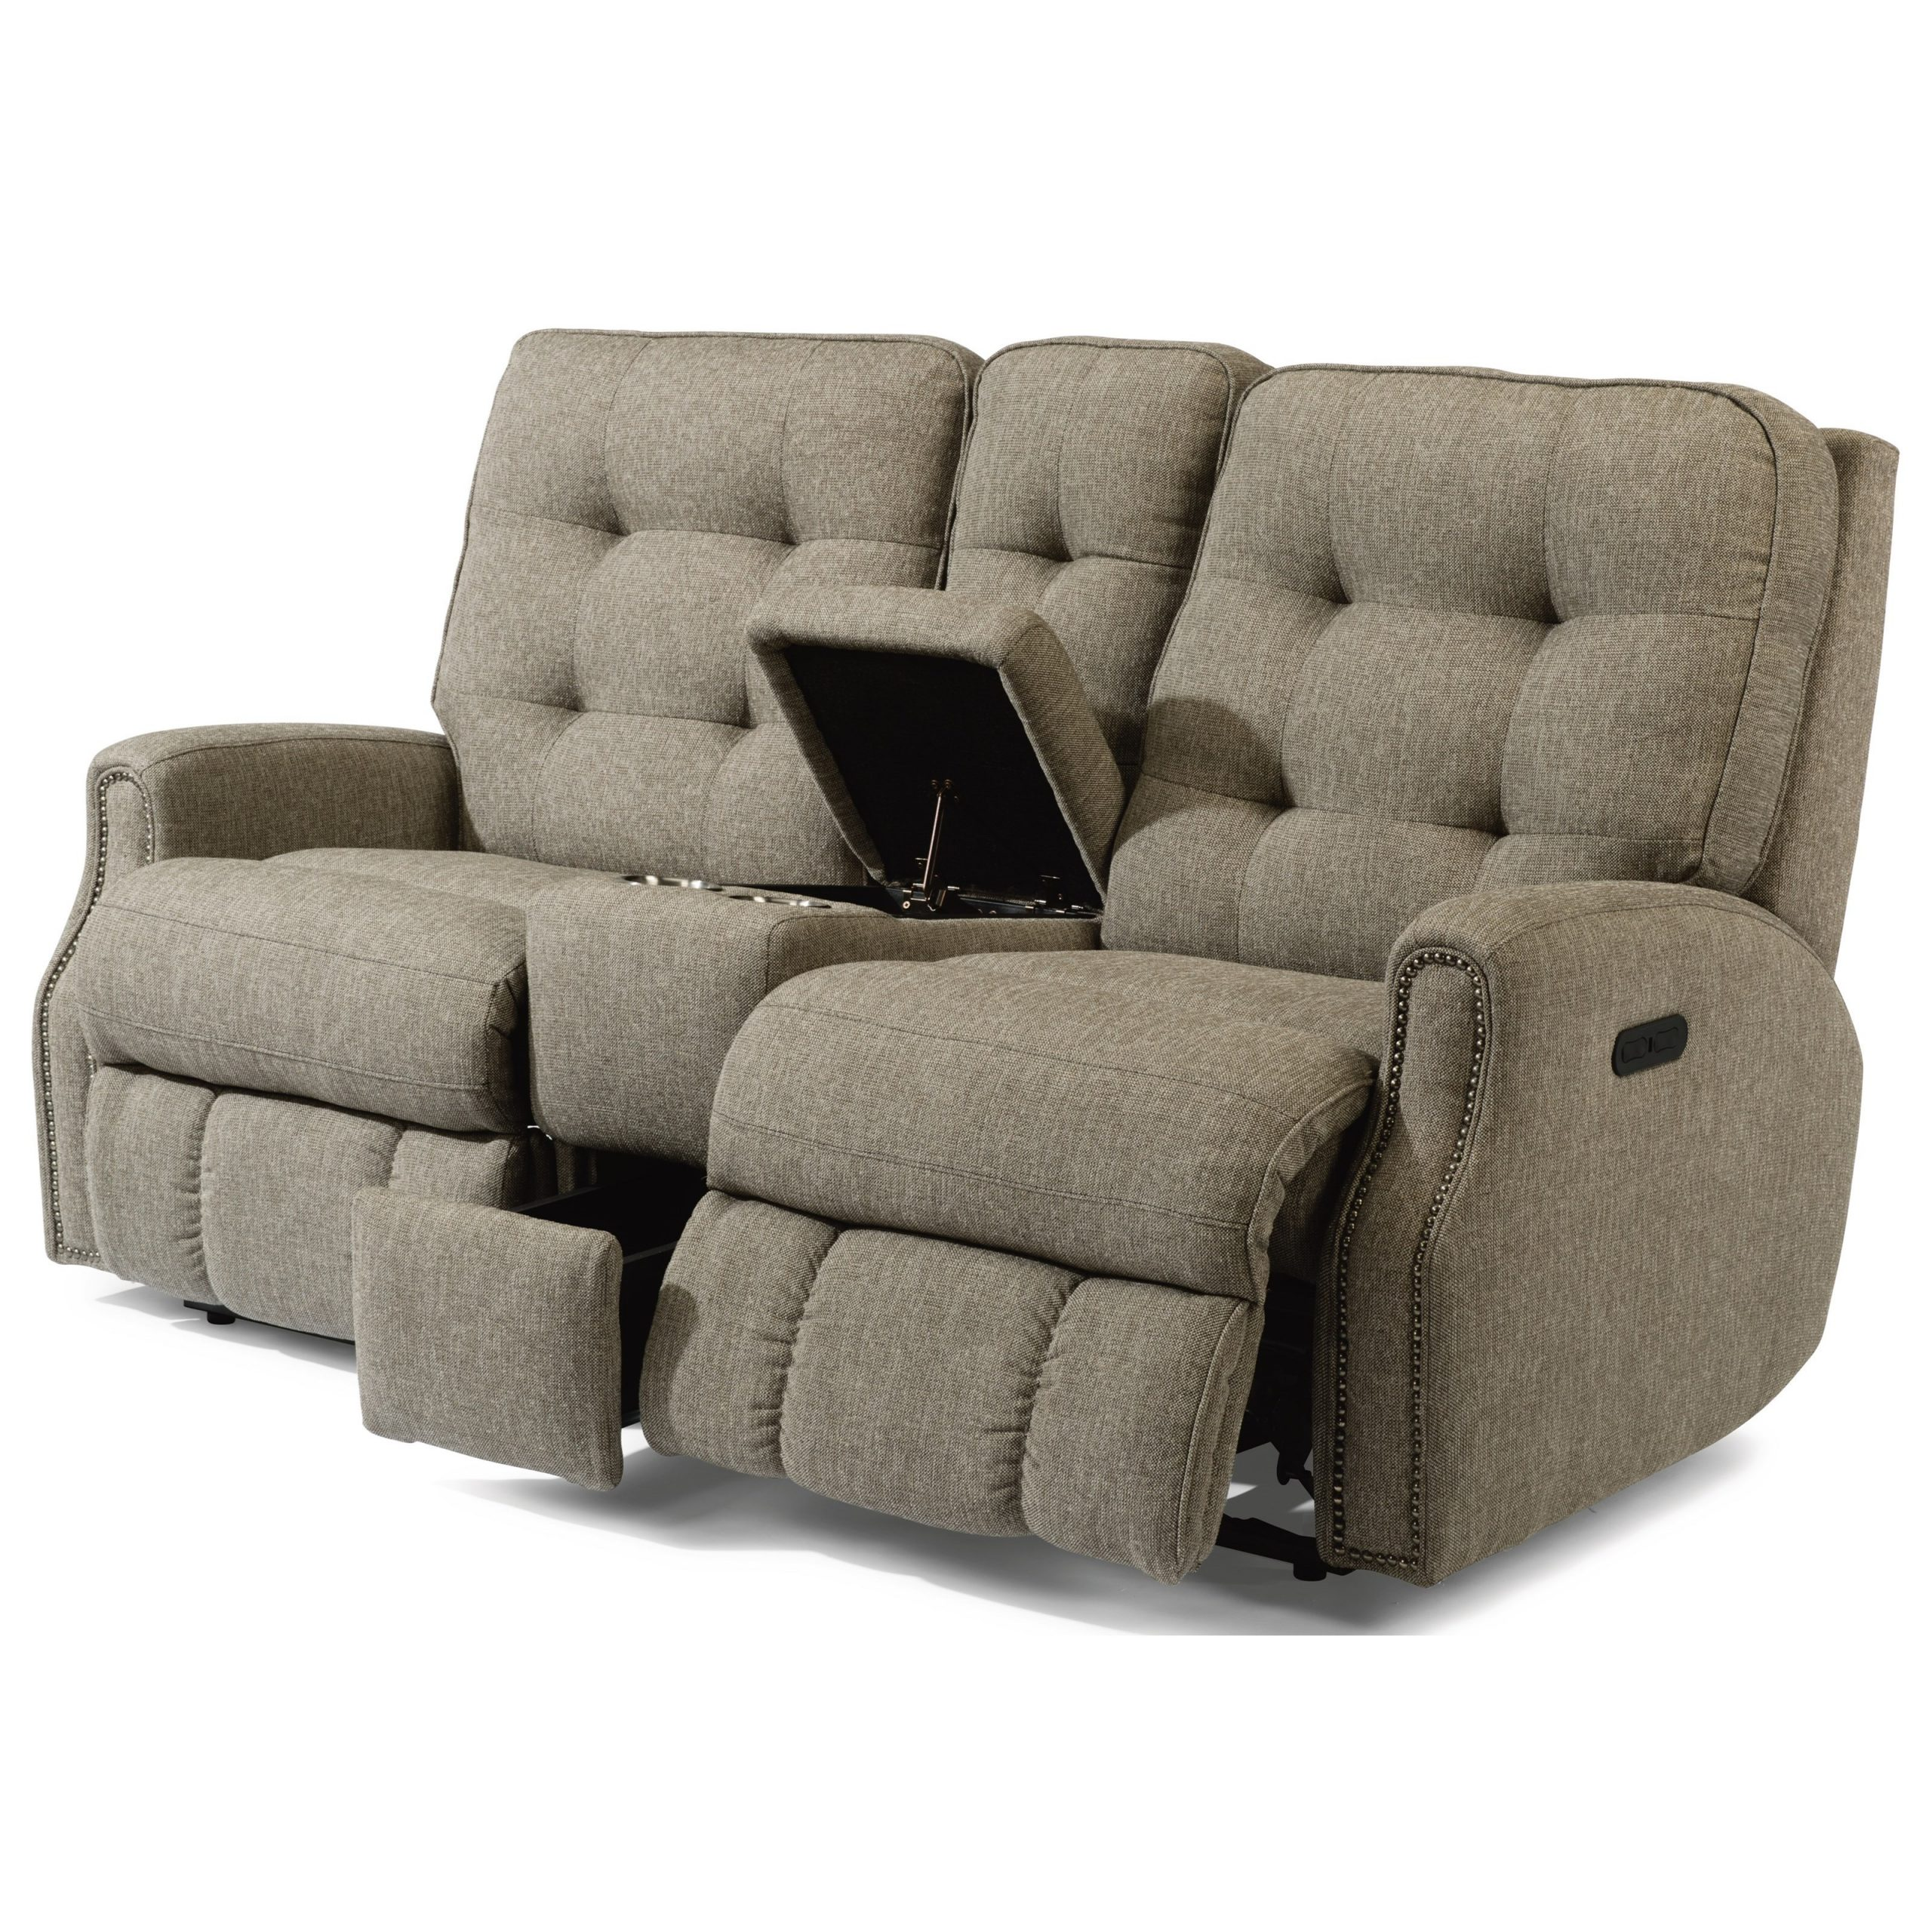 Flexsteel Devon Button Tufted Power Reclining Loveseat Within Recent Expedition Brown Power Reclining Sofas (View 10 of 15)